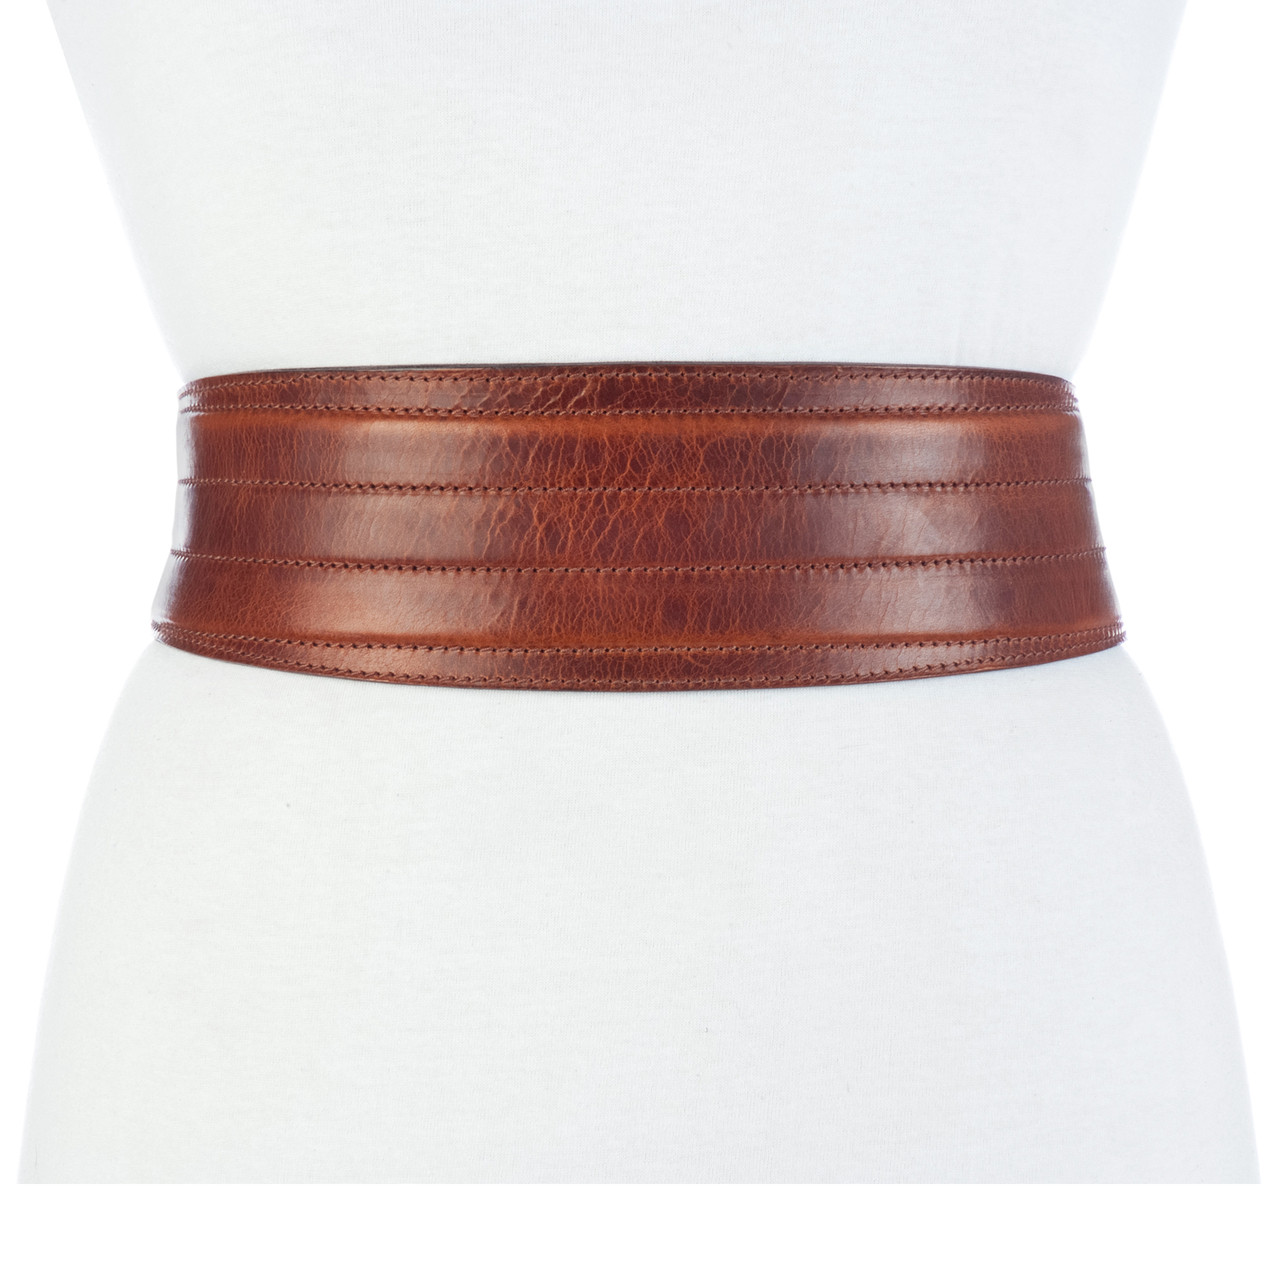 ea98836392 Ruza Leather Waist Cincher for Women